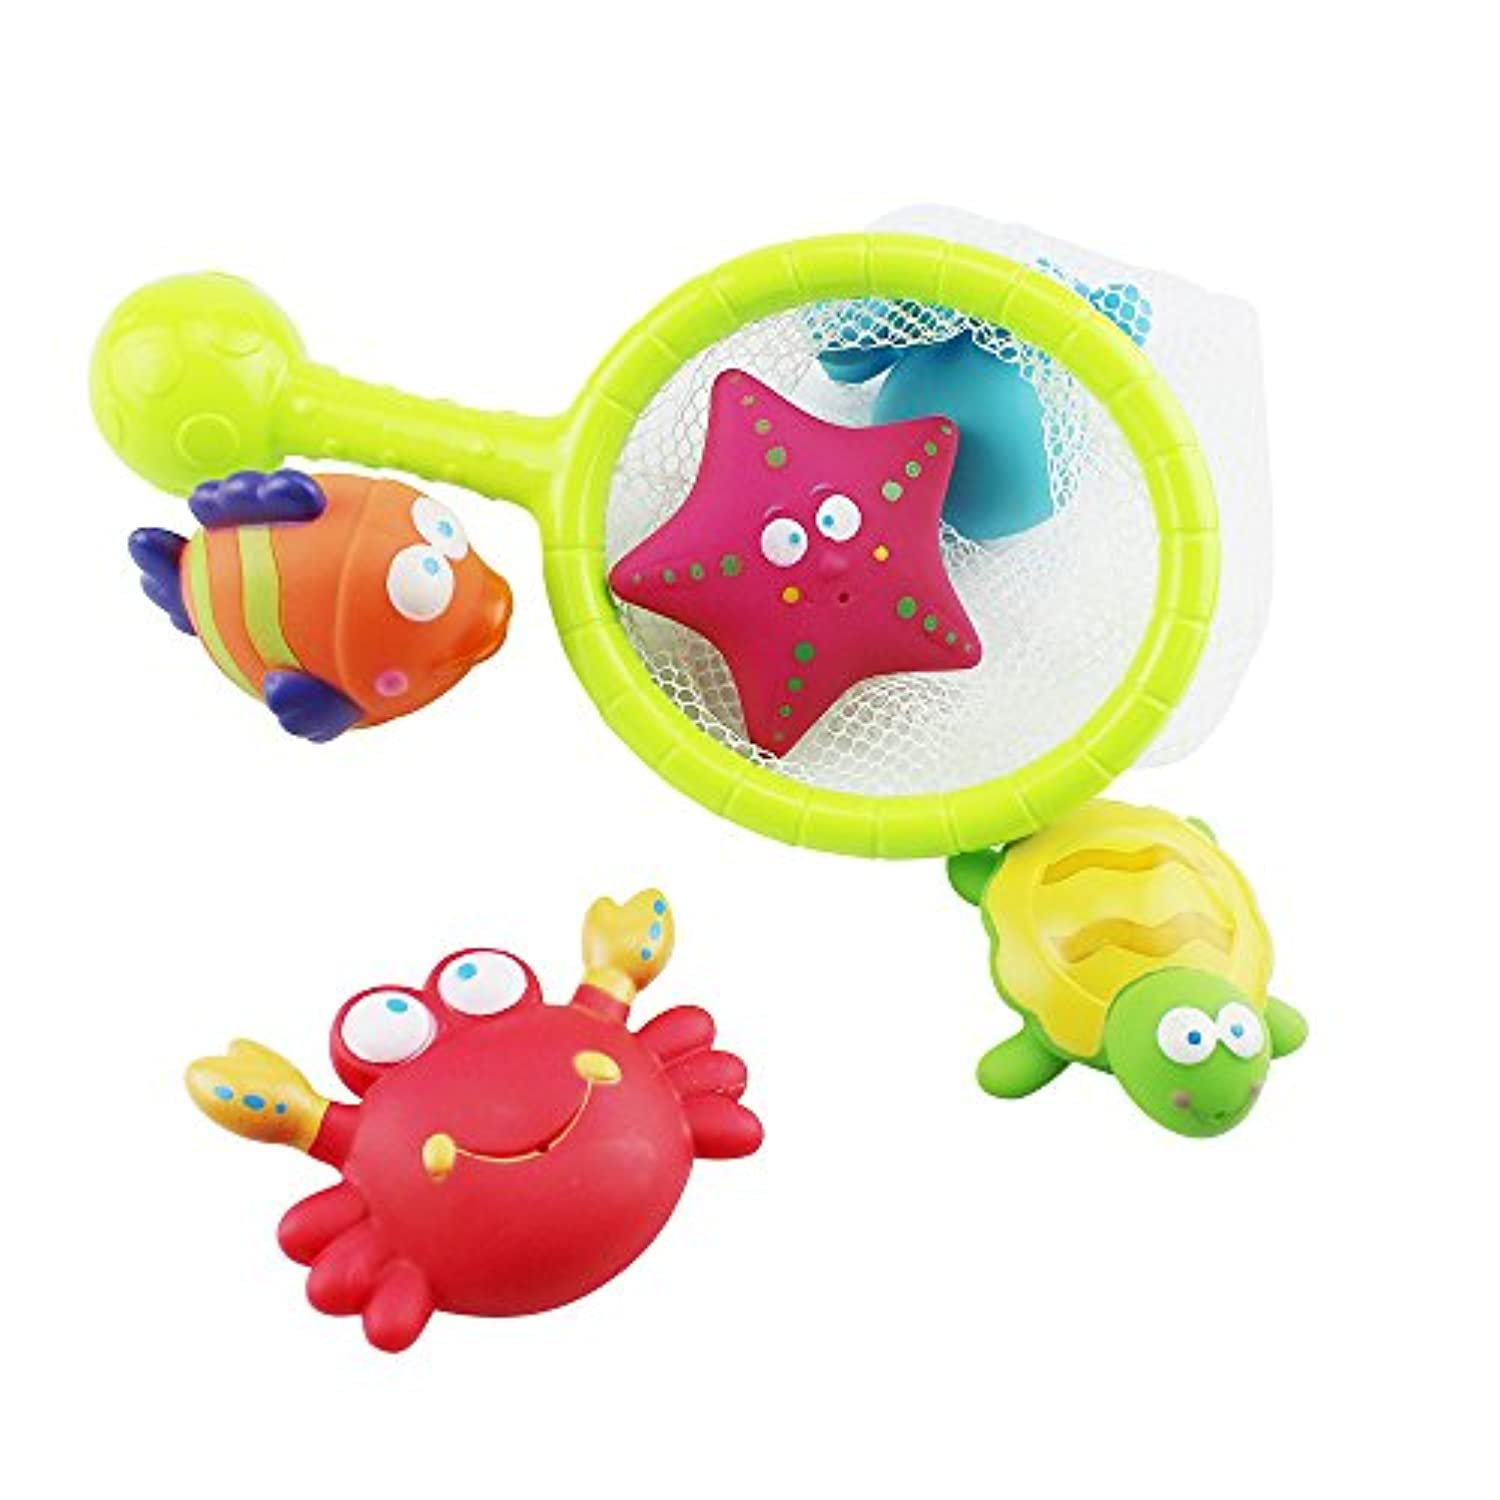 Rainbowkid Baby Bath Water Toy with turtles,starfish, octopus,clownfish,for baby Fish, Puzzle boxed Duck Toddler Soft Toys Bathtime Fishing Set for 3-48 months old baby using by Rainbowkids